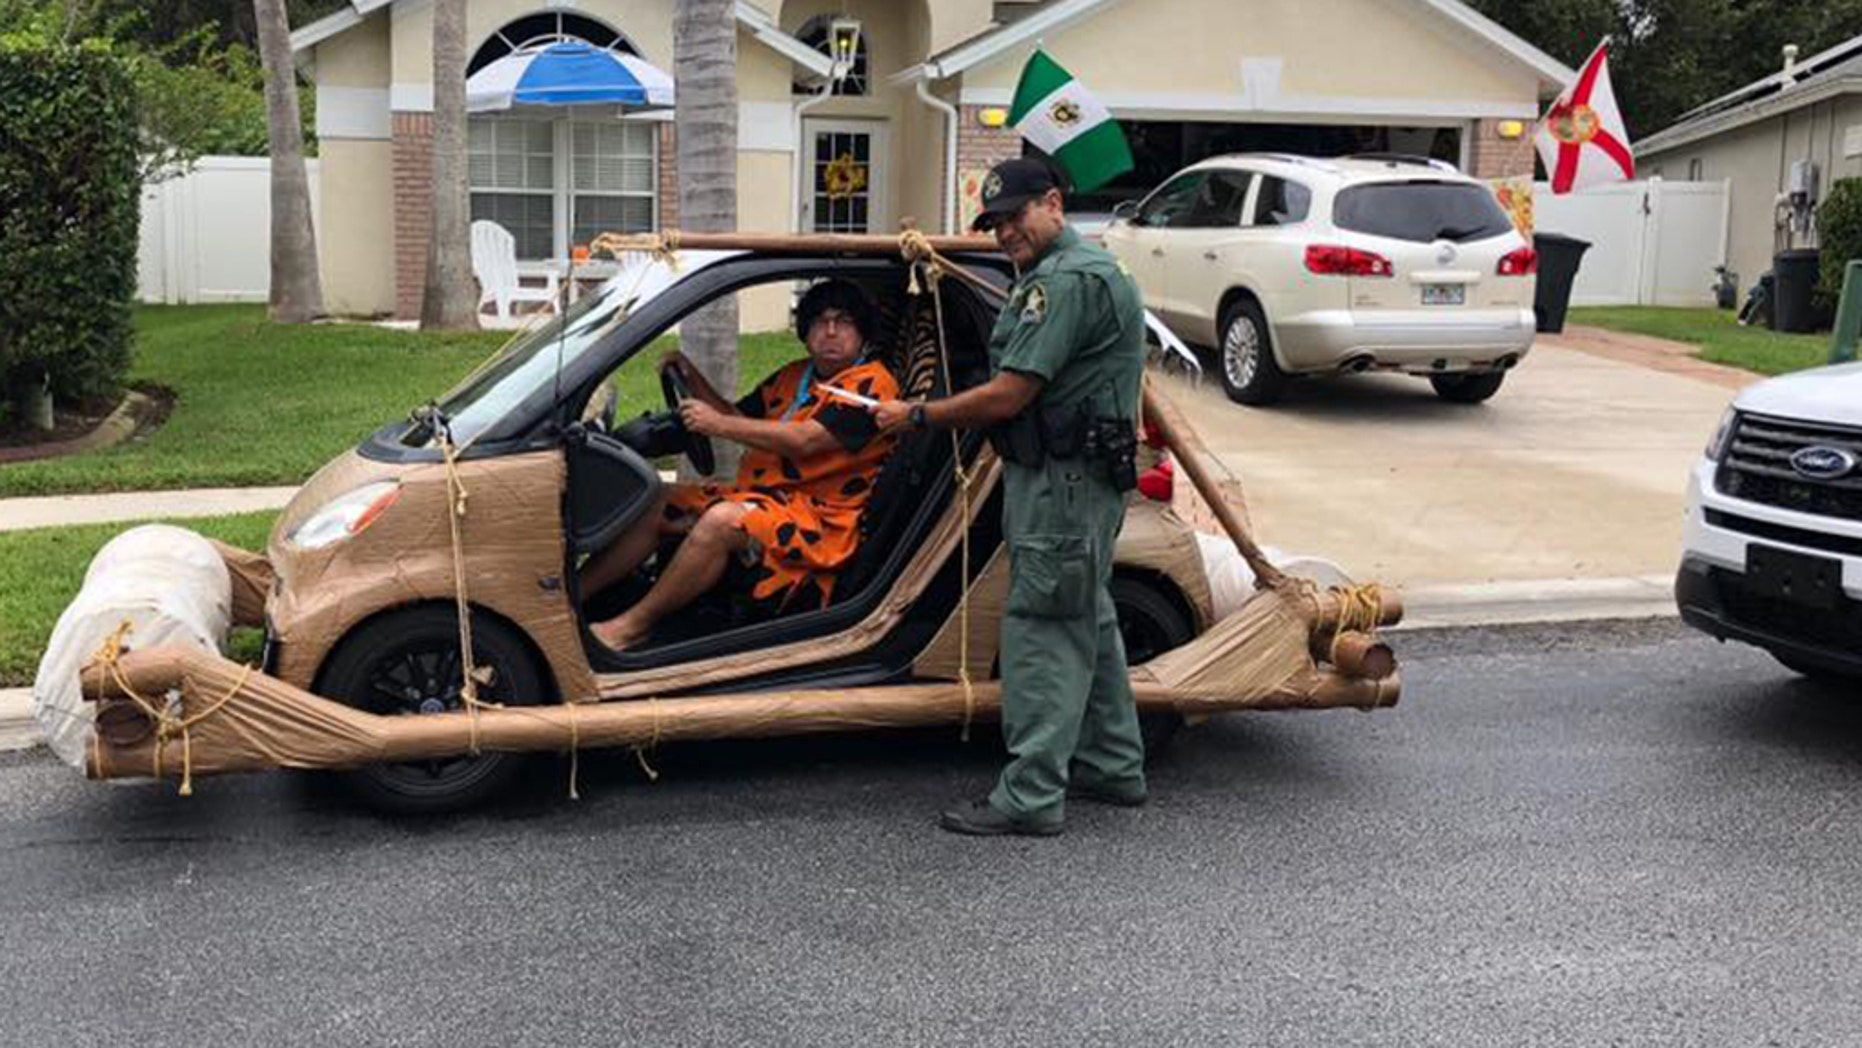 """A man driving a Flinstone """"foot mobile"""" was pulled over and """"ticketed"""" by police earlier this month."""